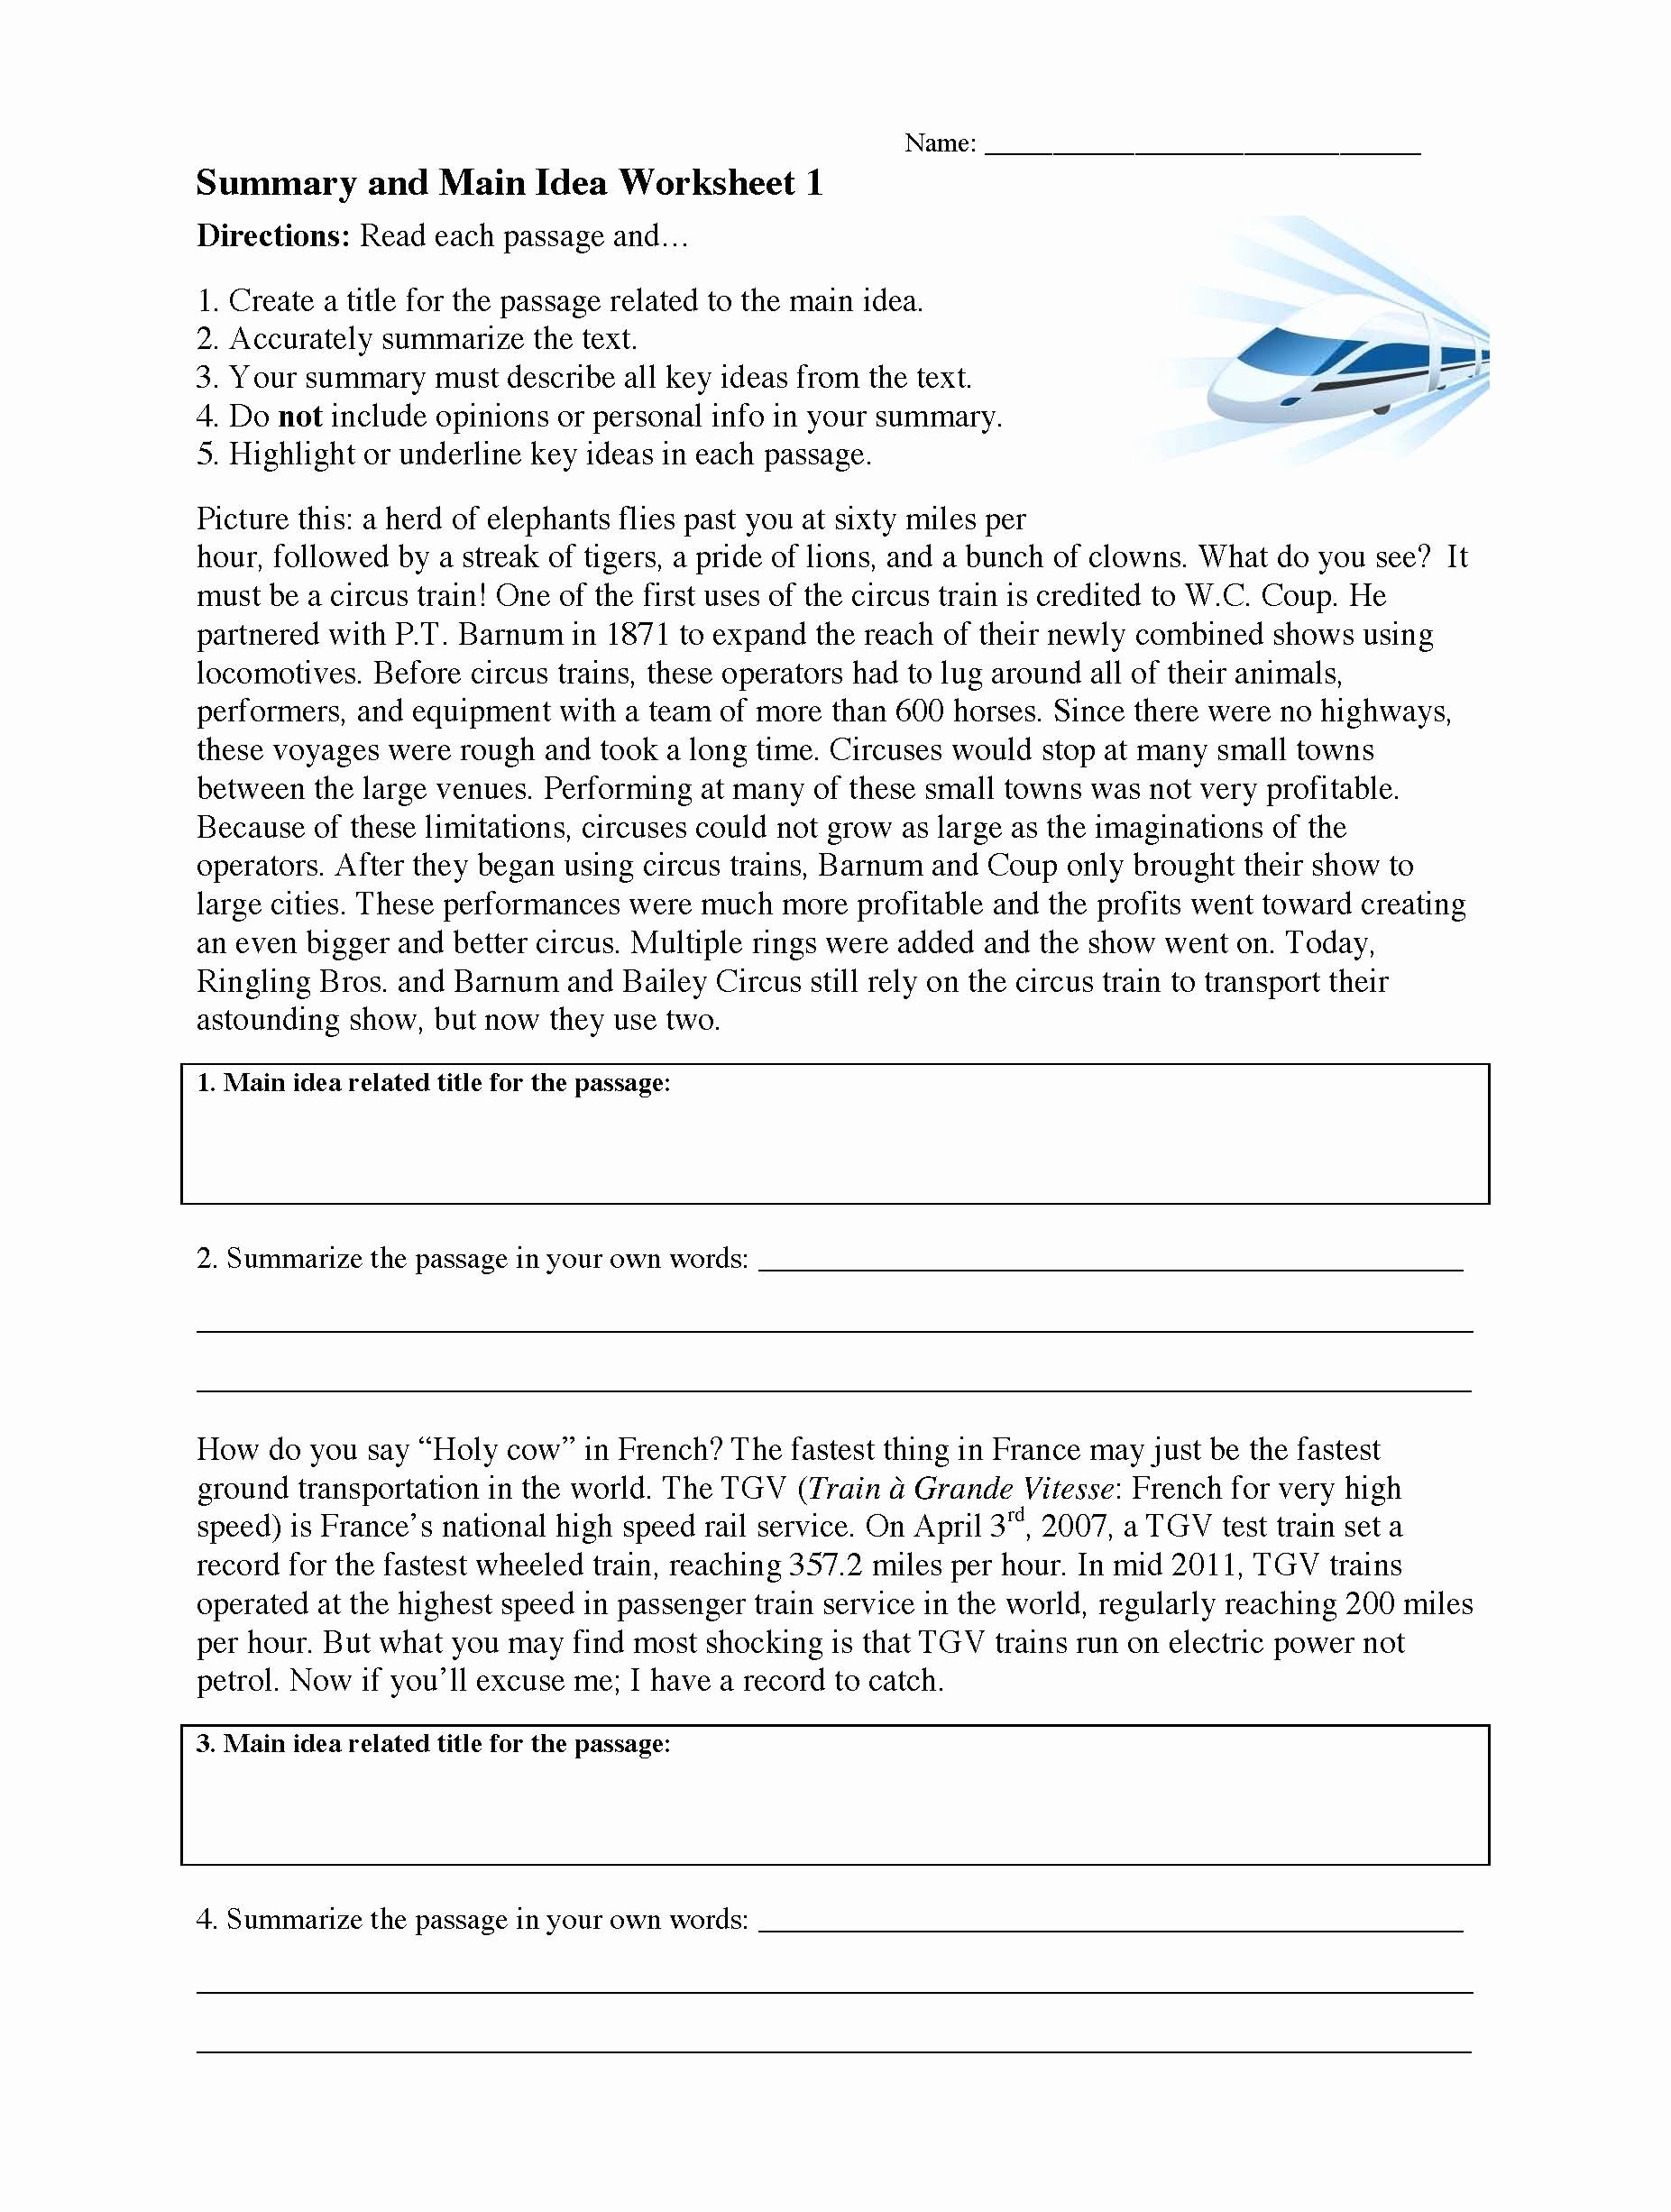 Main Idea and Summary Worksheets Printable Summarizing Worksheet 1